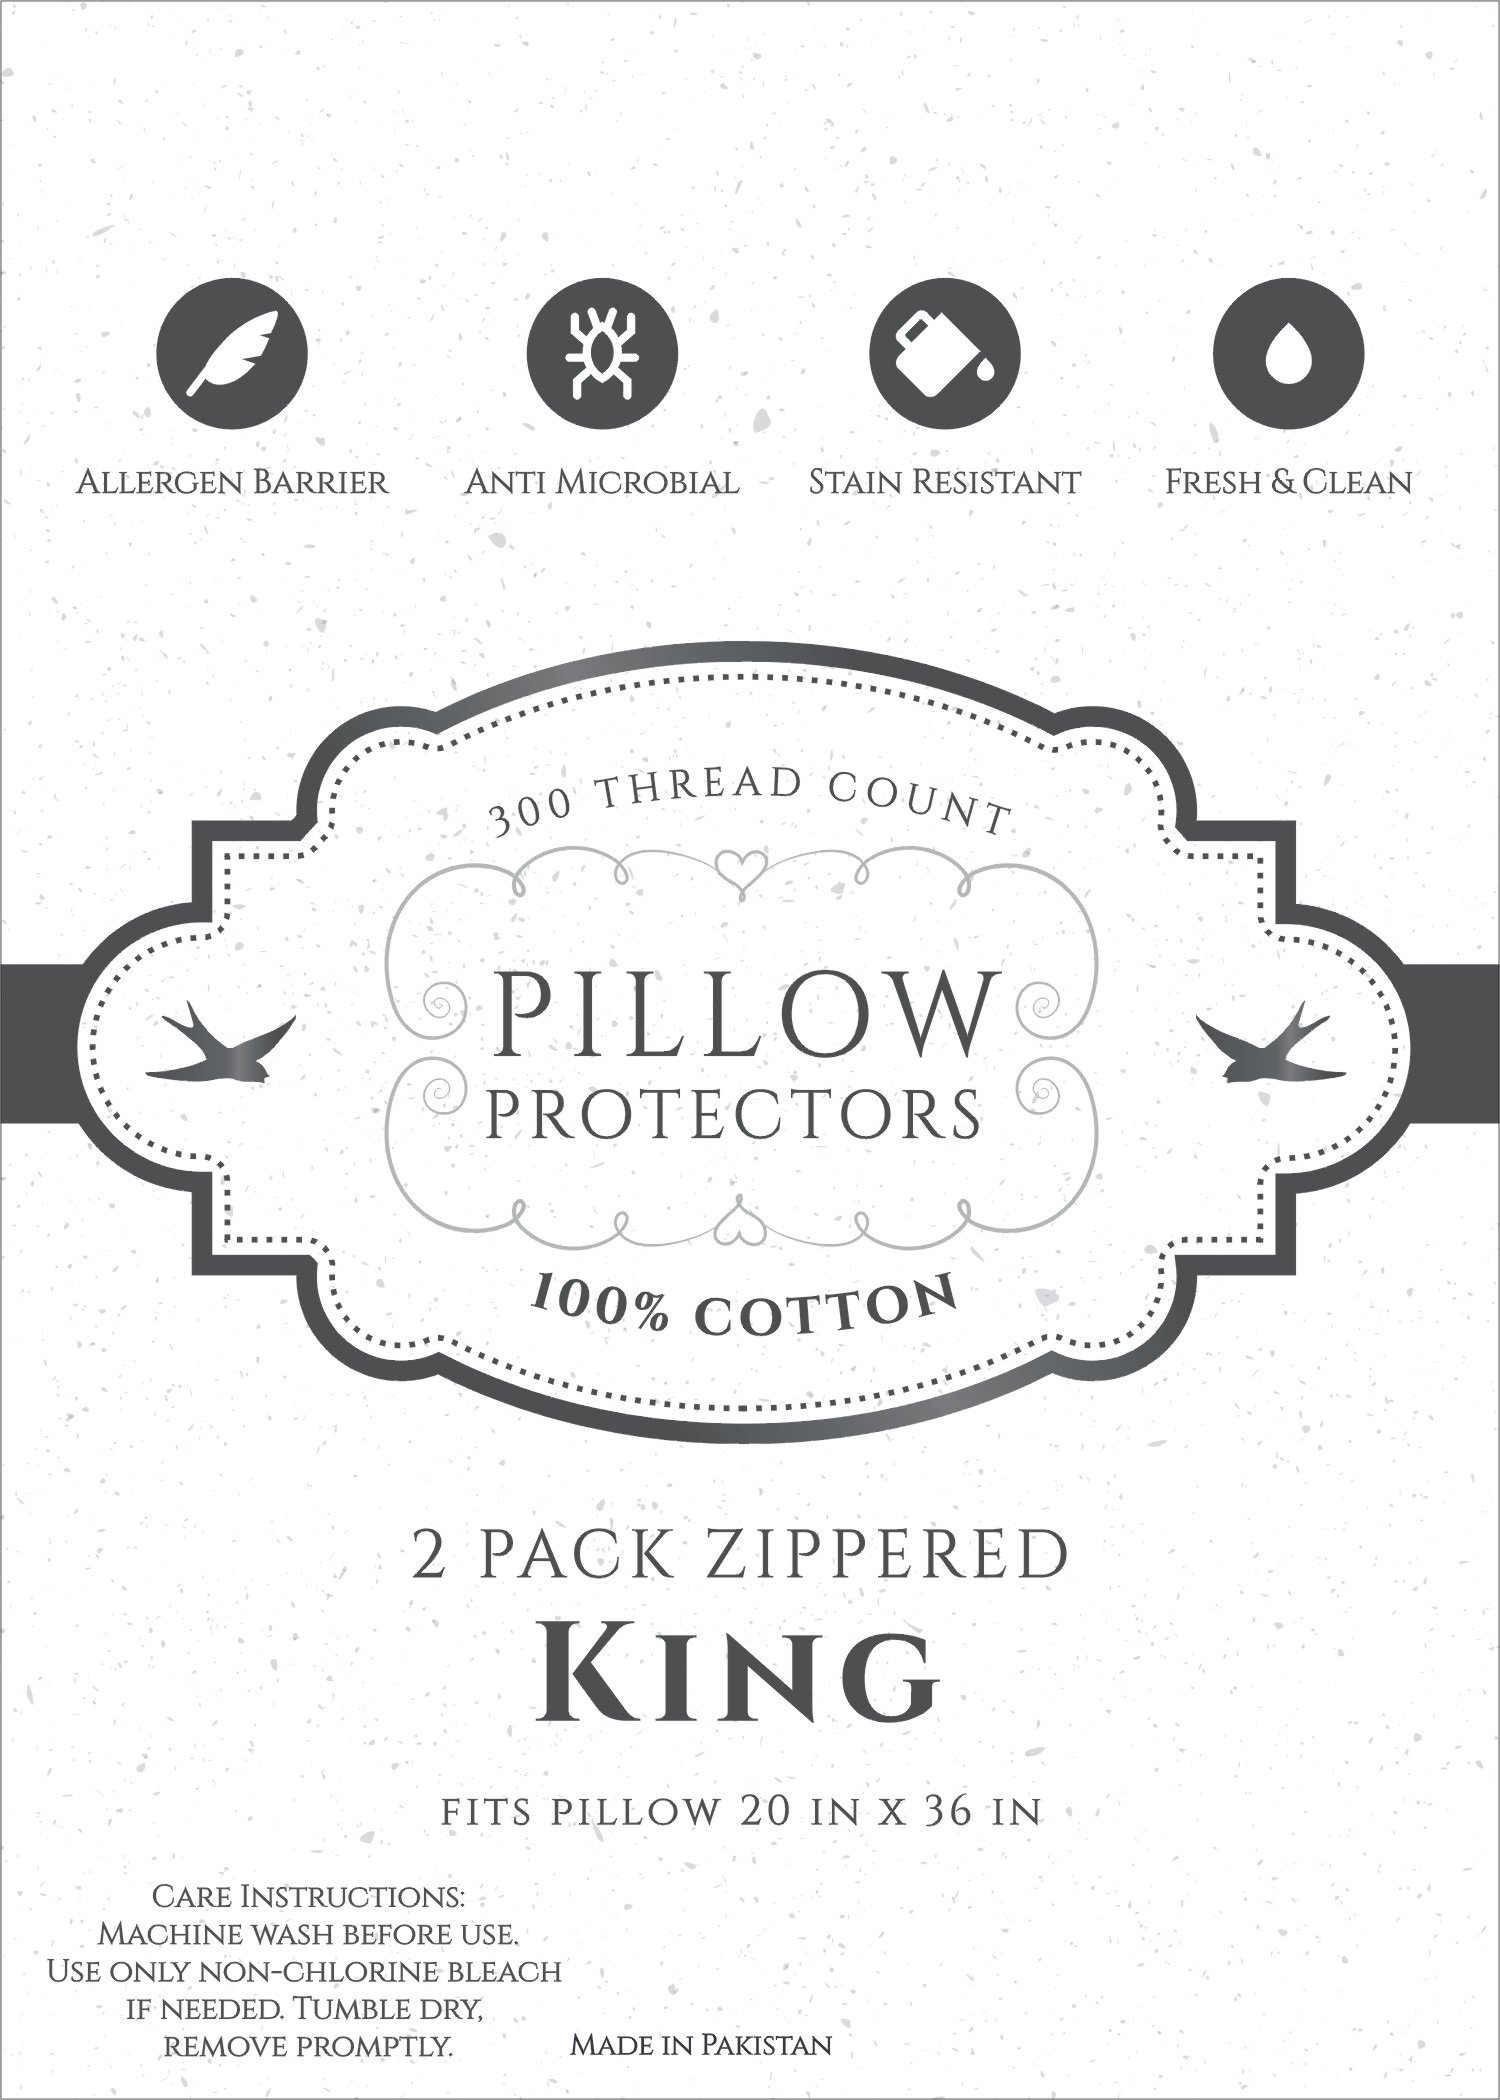 Home Fashion Designs 8-Pack 100% Cotton Allergy Control Pillow Protectors. Hypoallergenic Dust Mite & Bed Bug Resistant 400 Thread Count Zippered Pillow Covers. Lifetime Replacement (King) by Home Fashion Designs (Image #4)